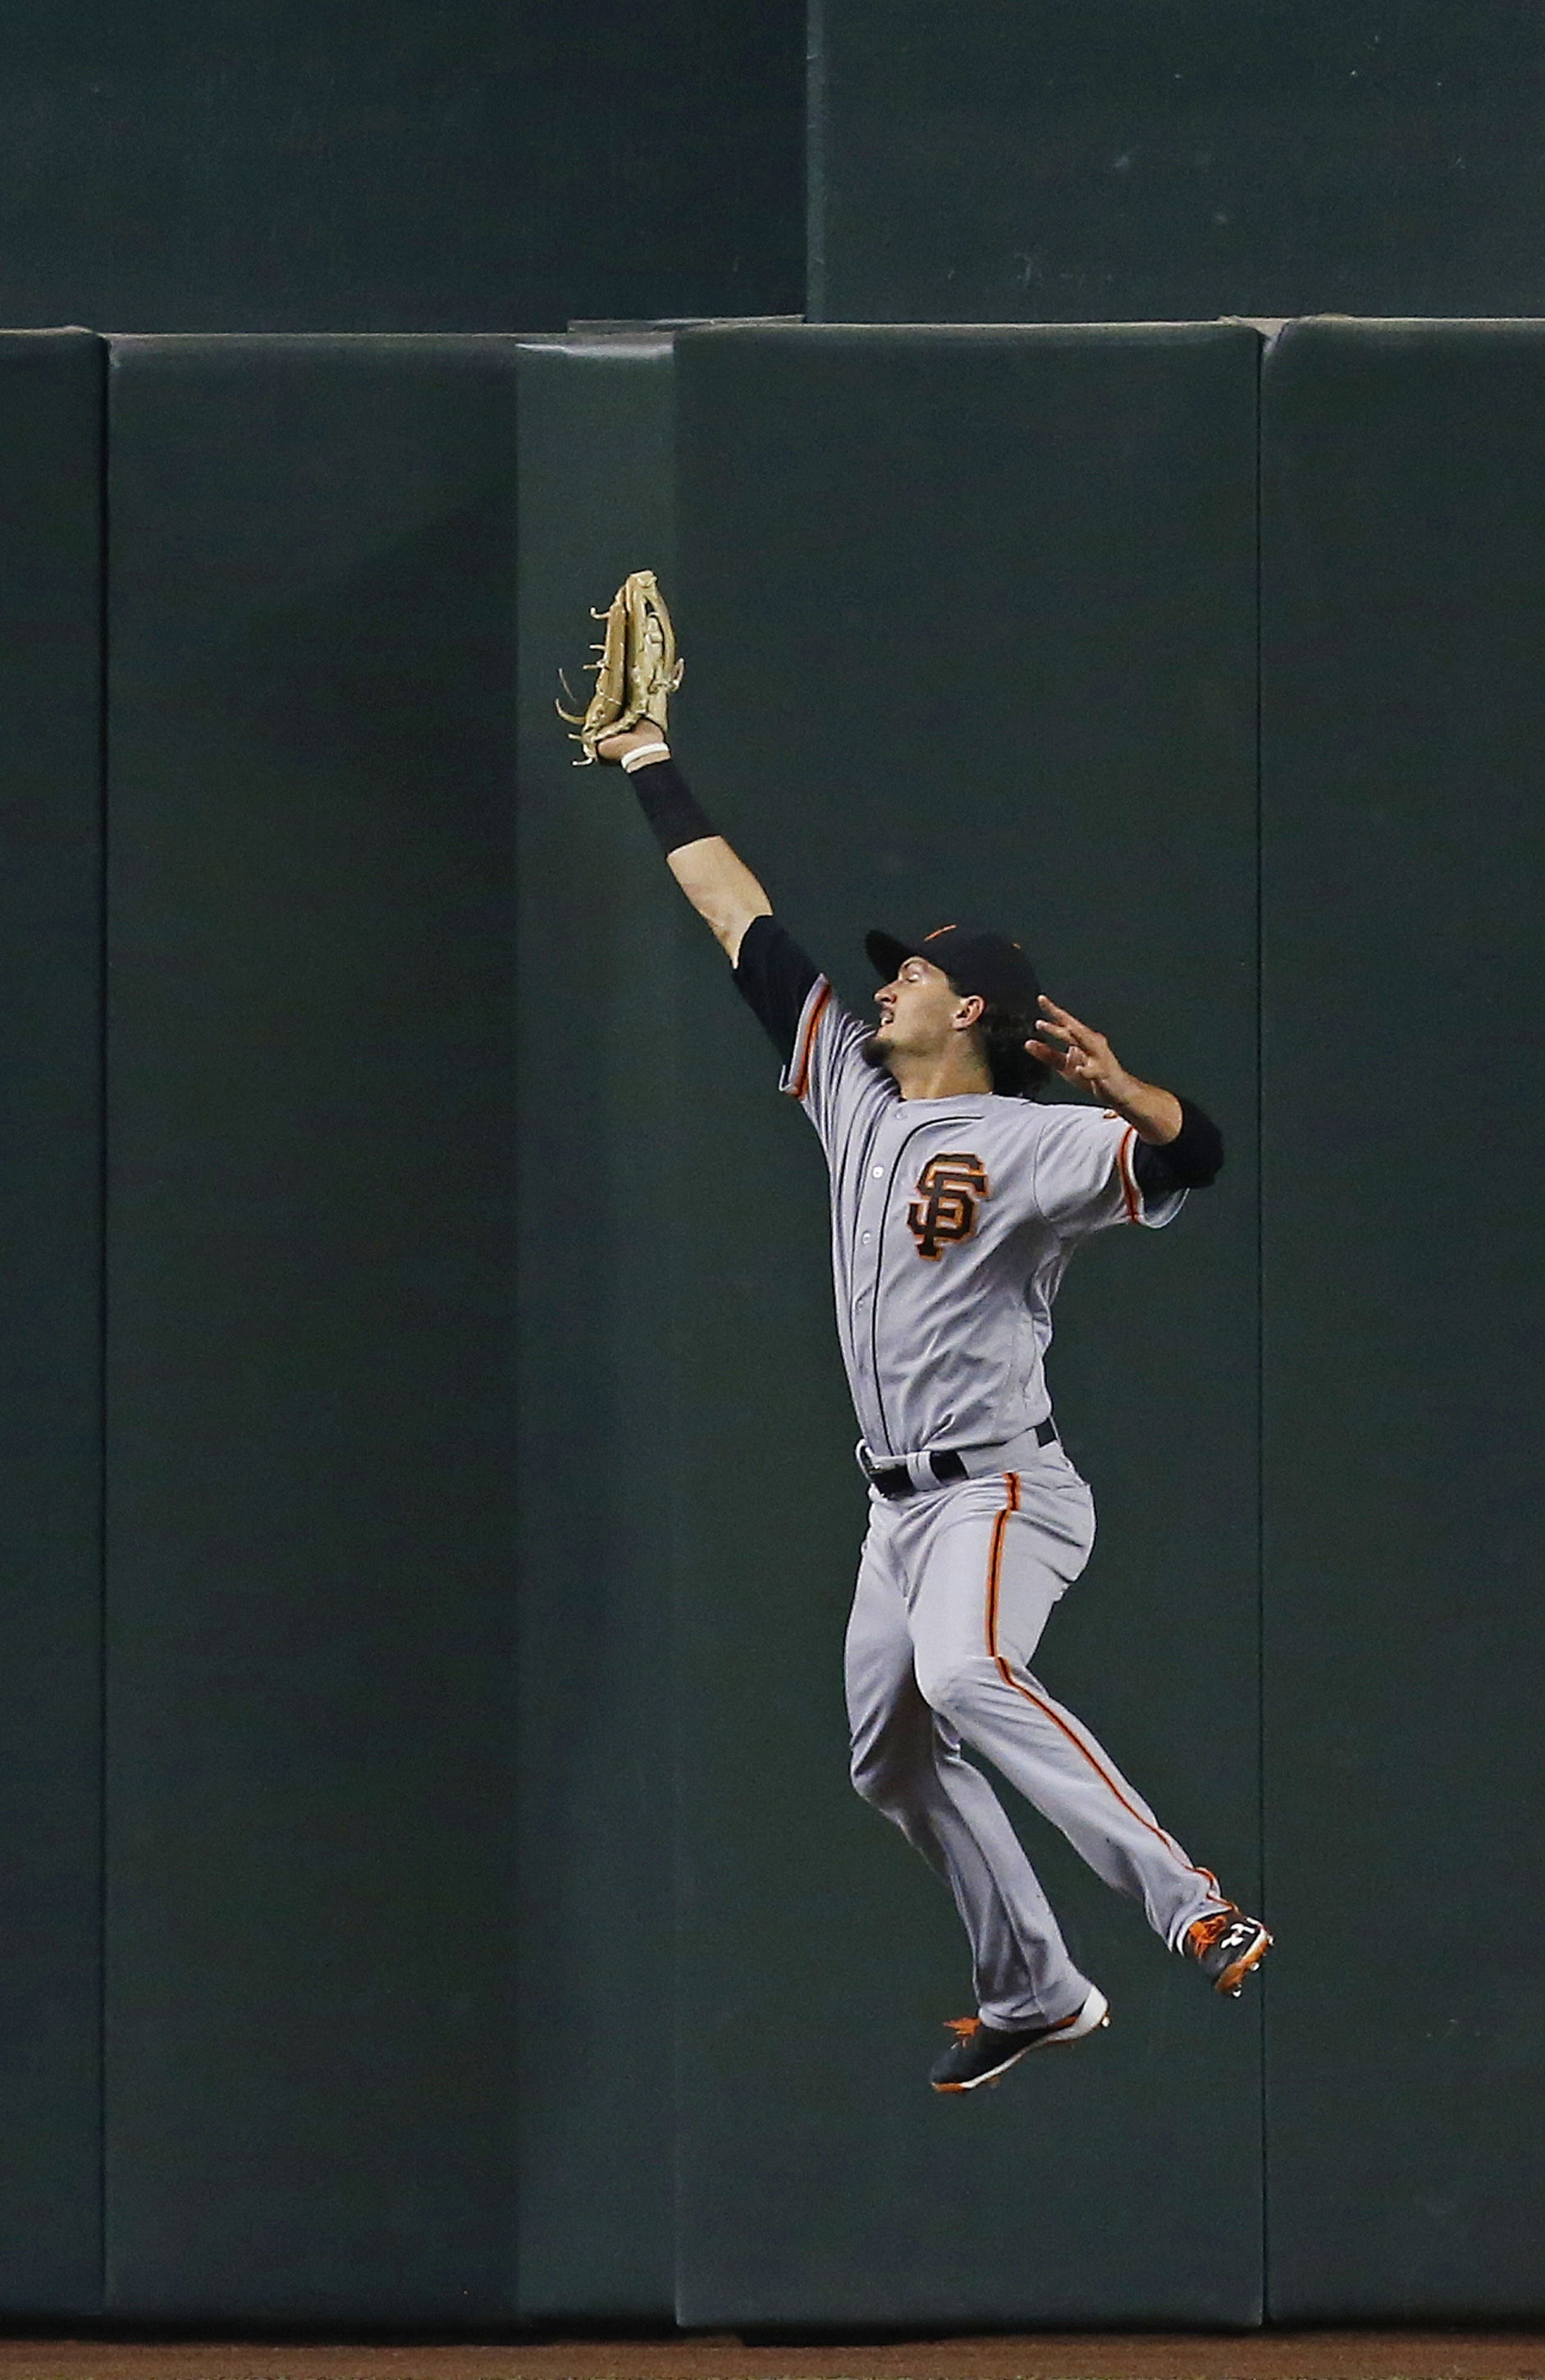 San Francisco Giants' Jarrett Parker makes a leaping catch on a fly ball hit by Arizona Diamondbacks' Jake Lamb during the sixth inning of a baseball game Sunday, July 3, 2016, in Phoenix. (AP Photo/Ross D. Franklin)